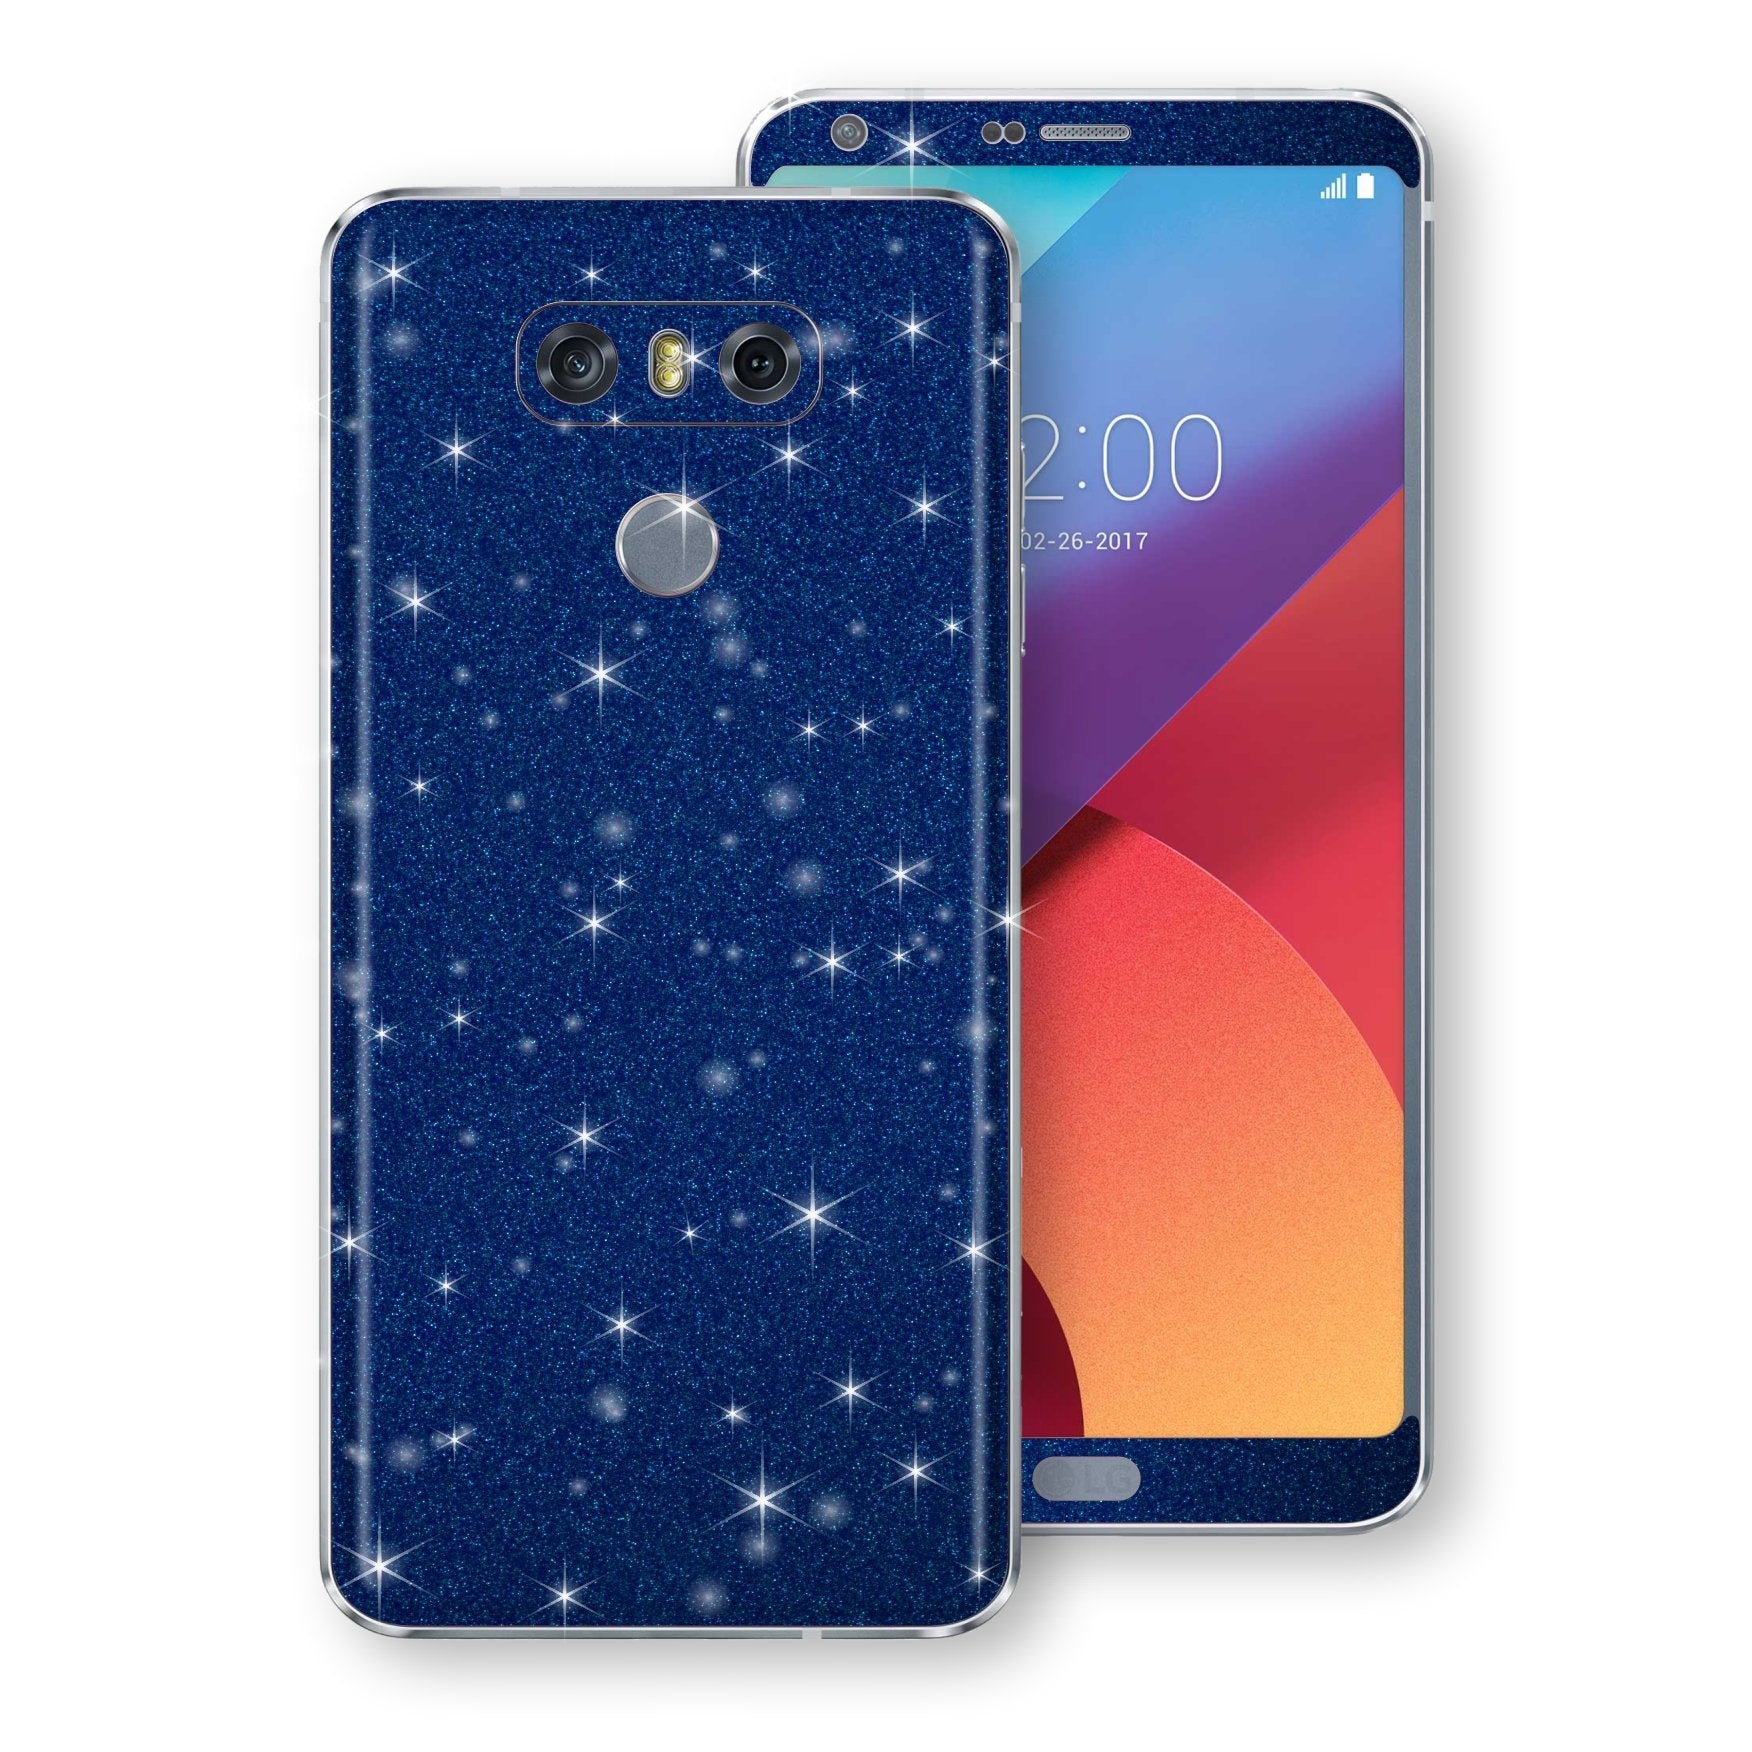 LG G6 Diamond Blue Shimmering, Sparkling, Glitter Skin, Decal, Wrap, Protector, Cover by EasySkinz | EasySkinz.com